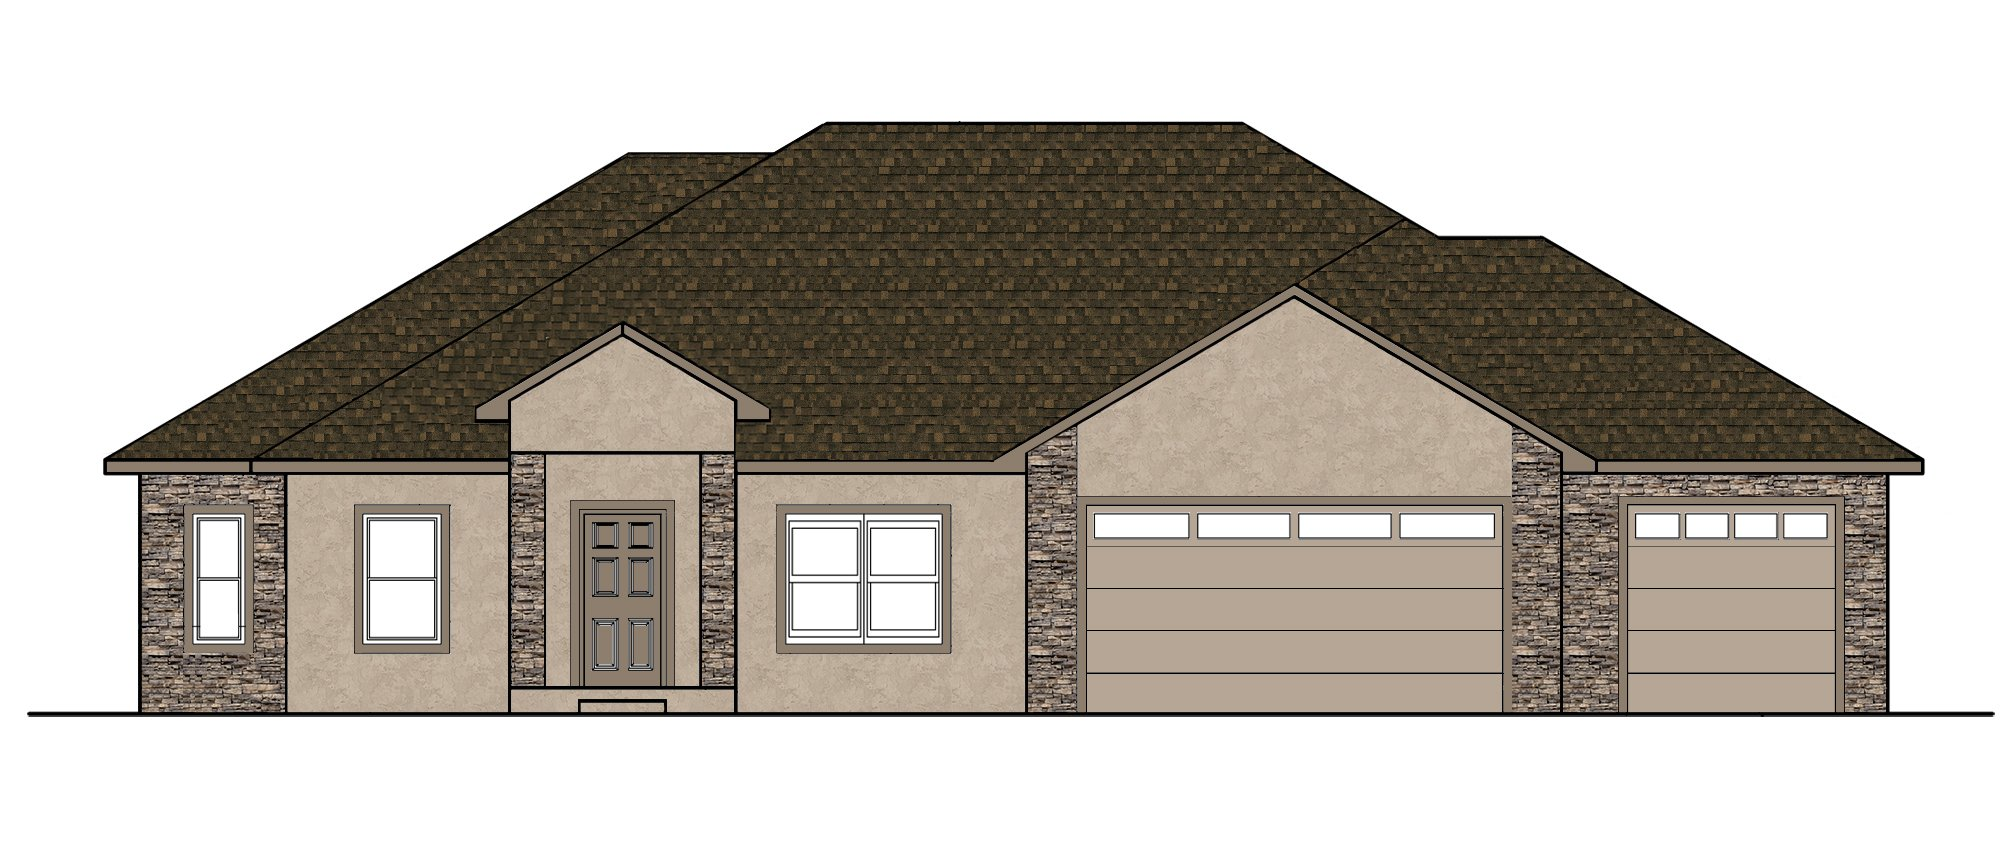 New Construction 4 Bedroom 2 Bath Home - 3029 Sleeping Bear Rd Montrose, CO - Atha Team Residential Real Estate